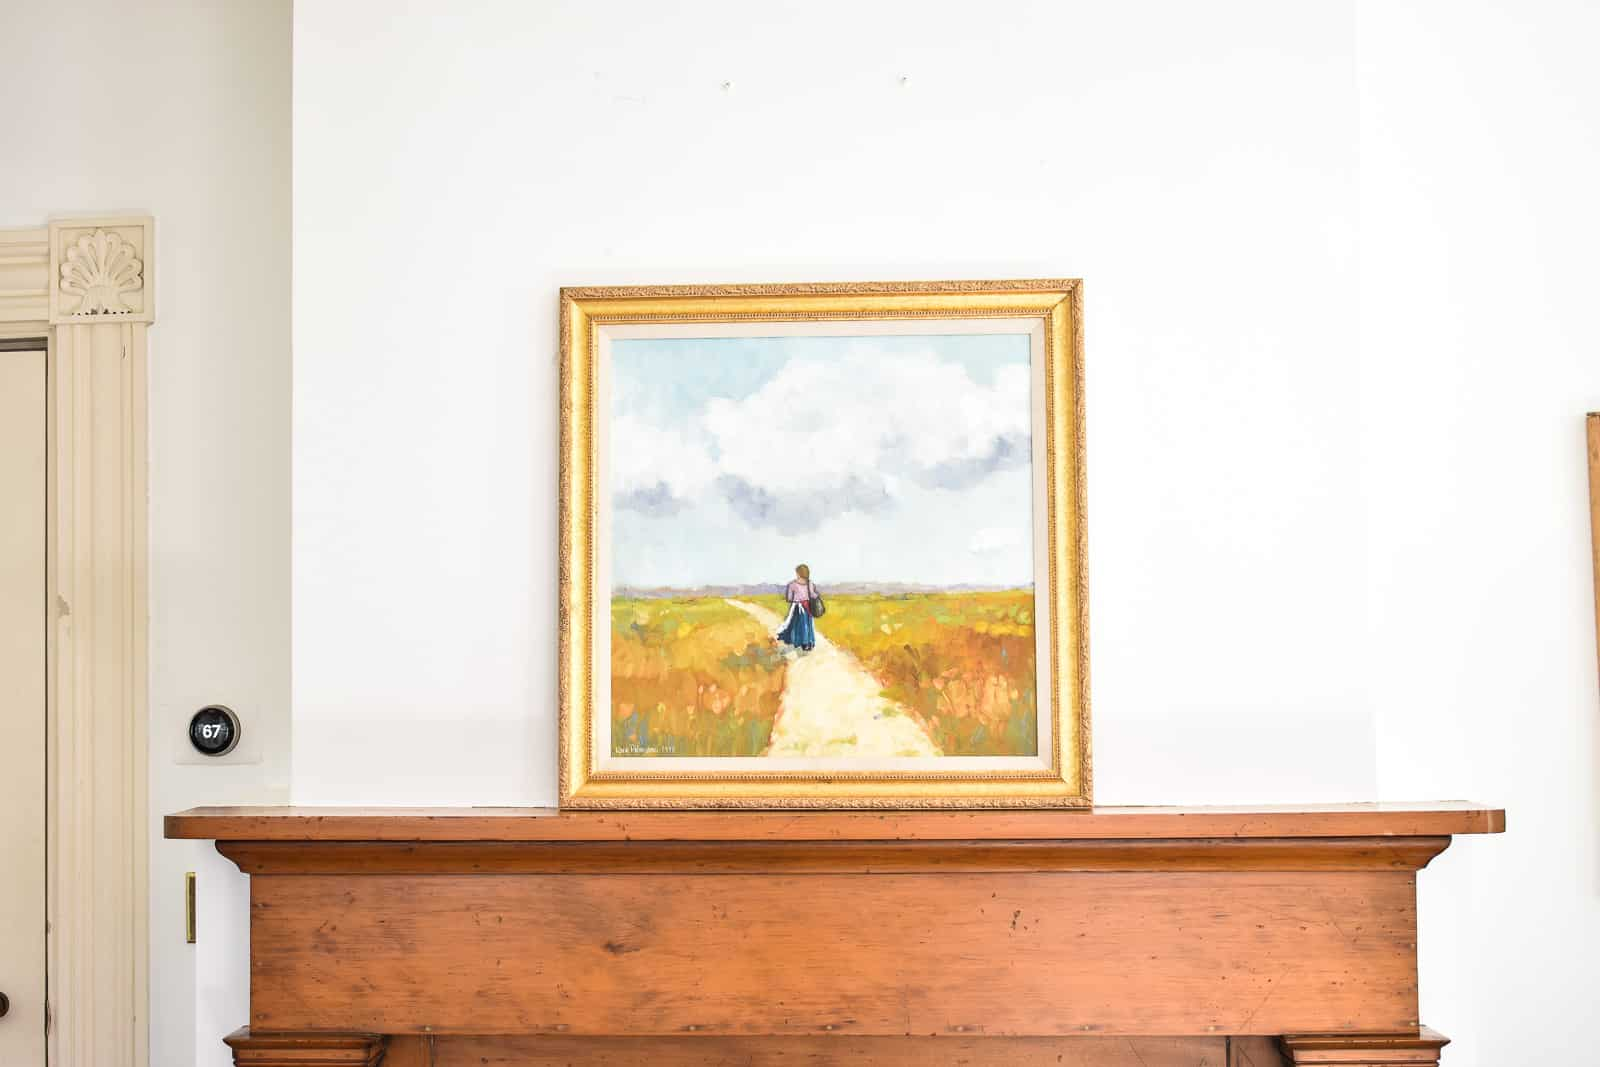 leaning artwork on the mantel